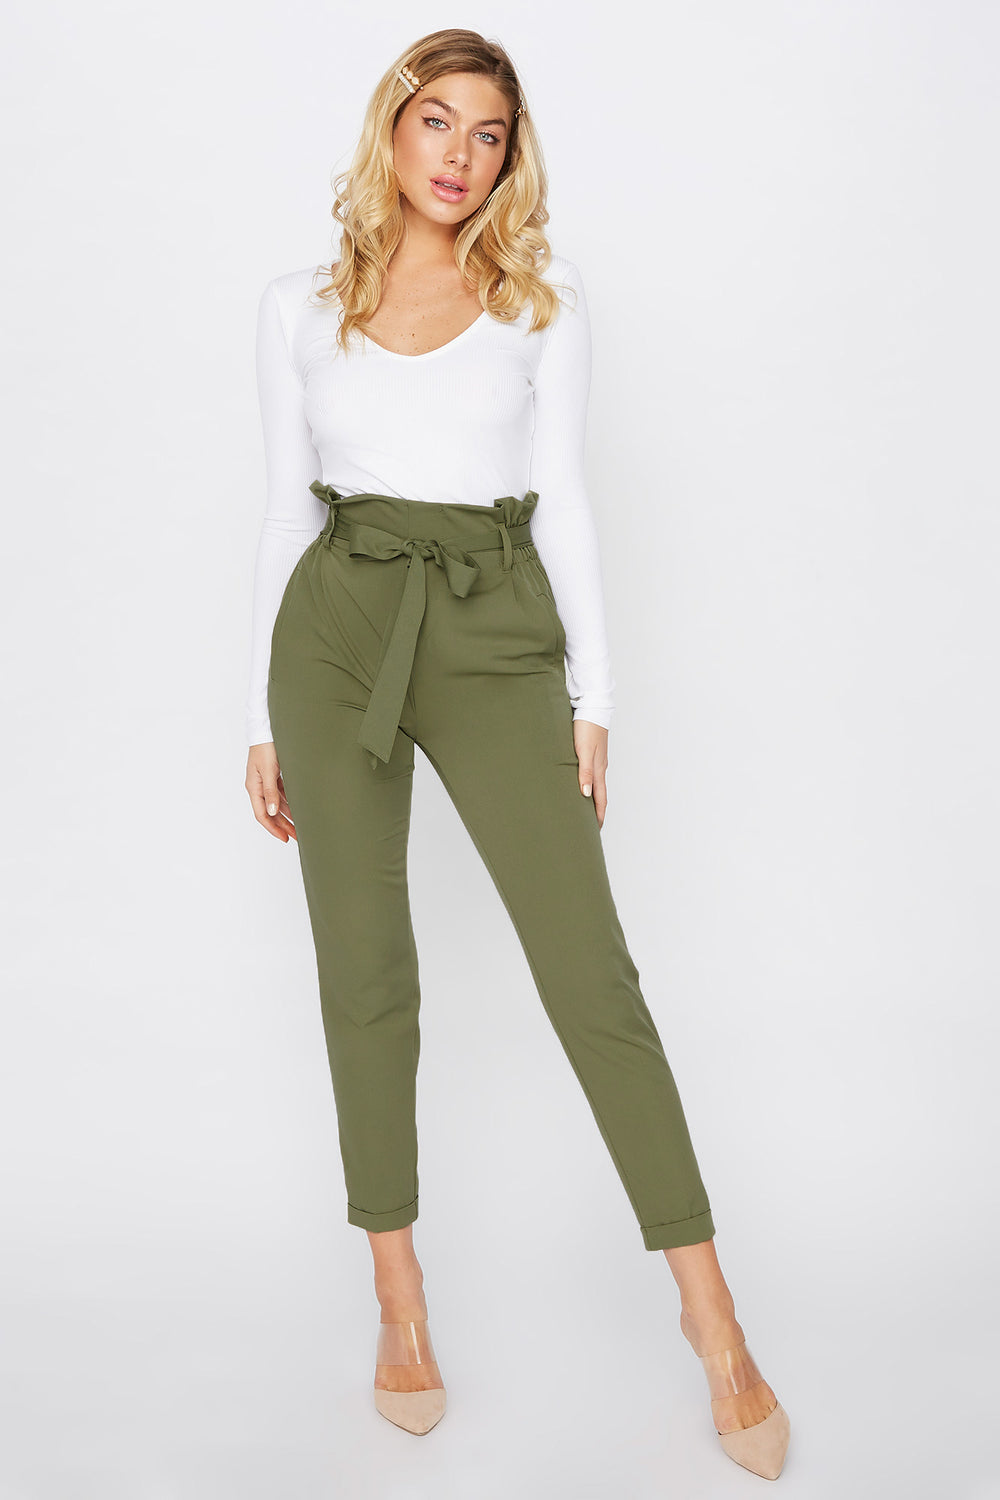 Cuffed Self Belted Paperbag Pant Jade